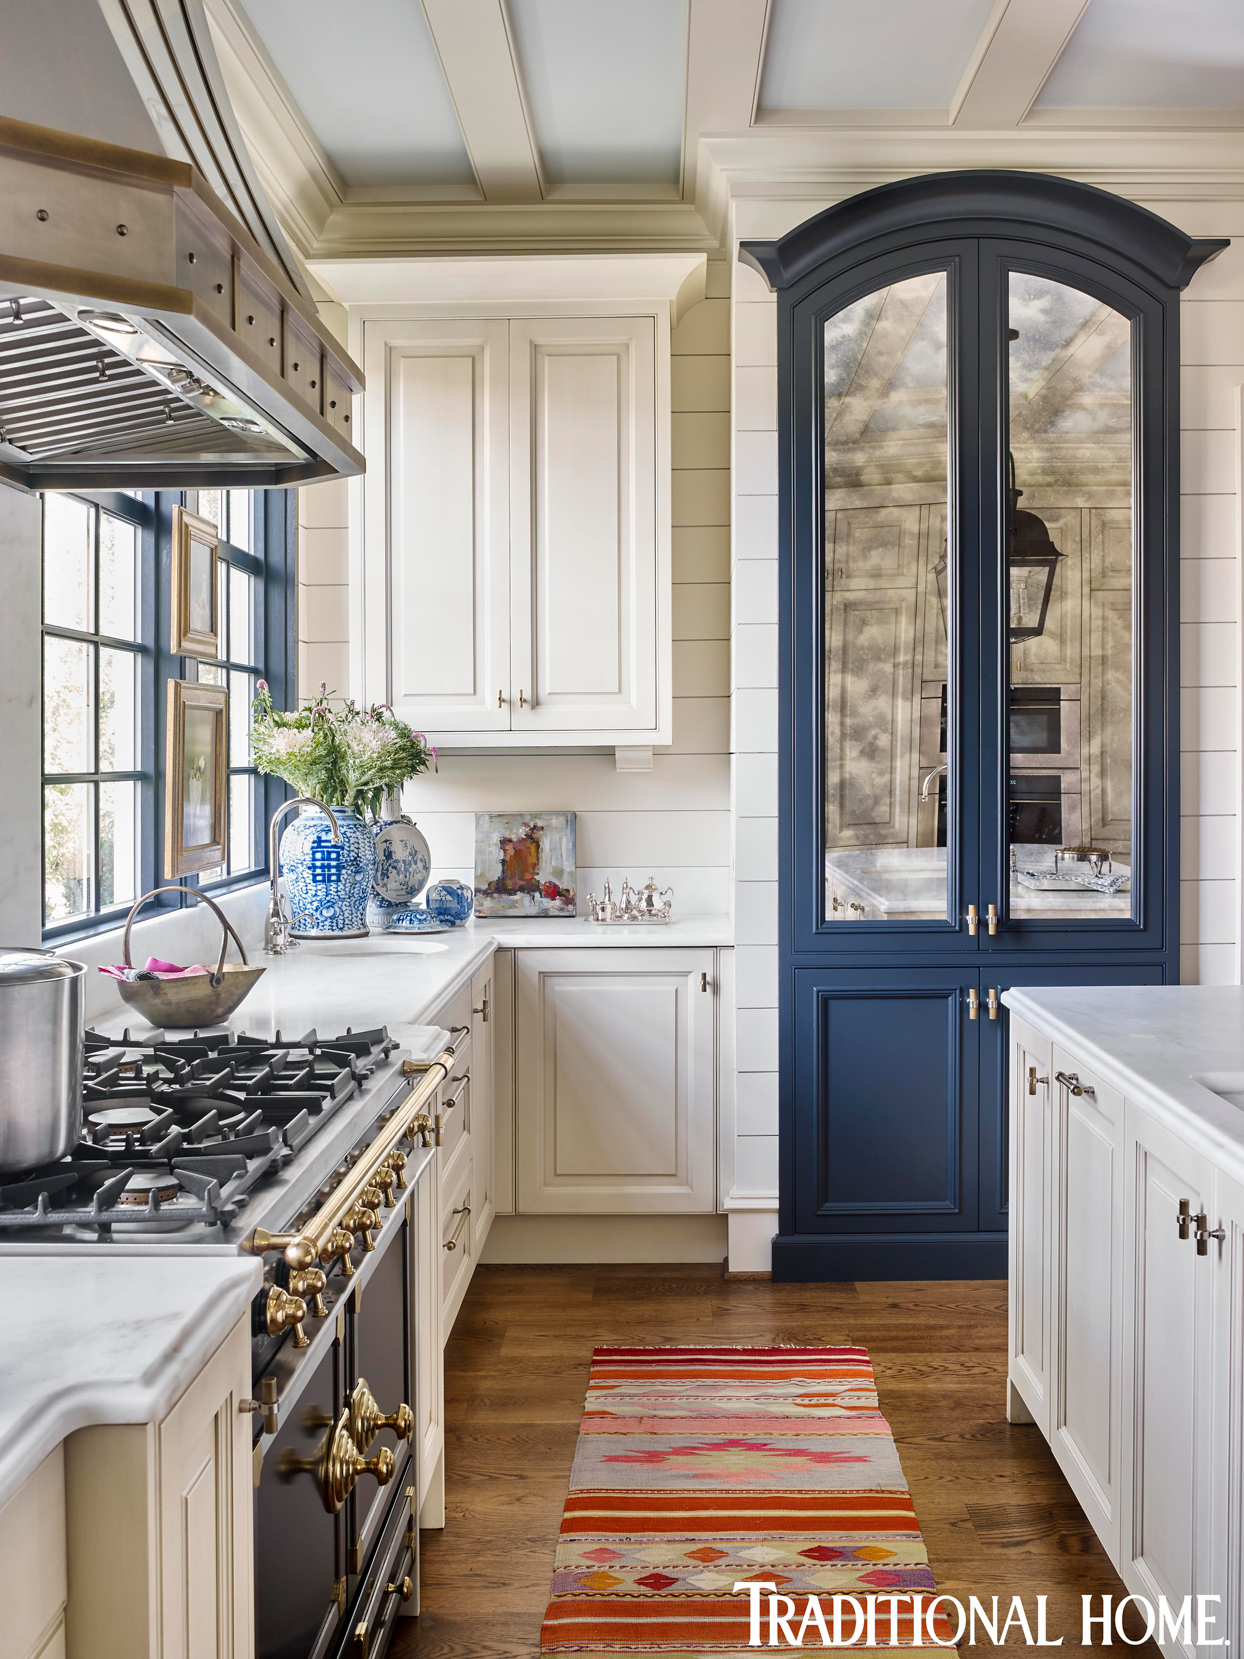 white and blue kitchen with wood floor and red accent rug